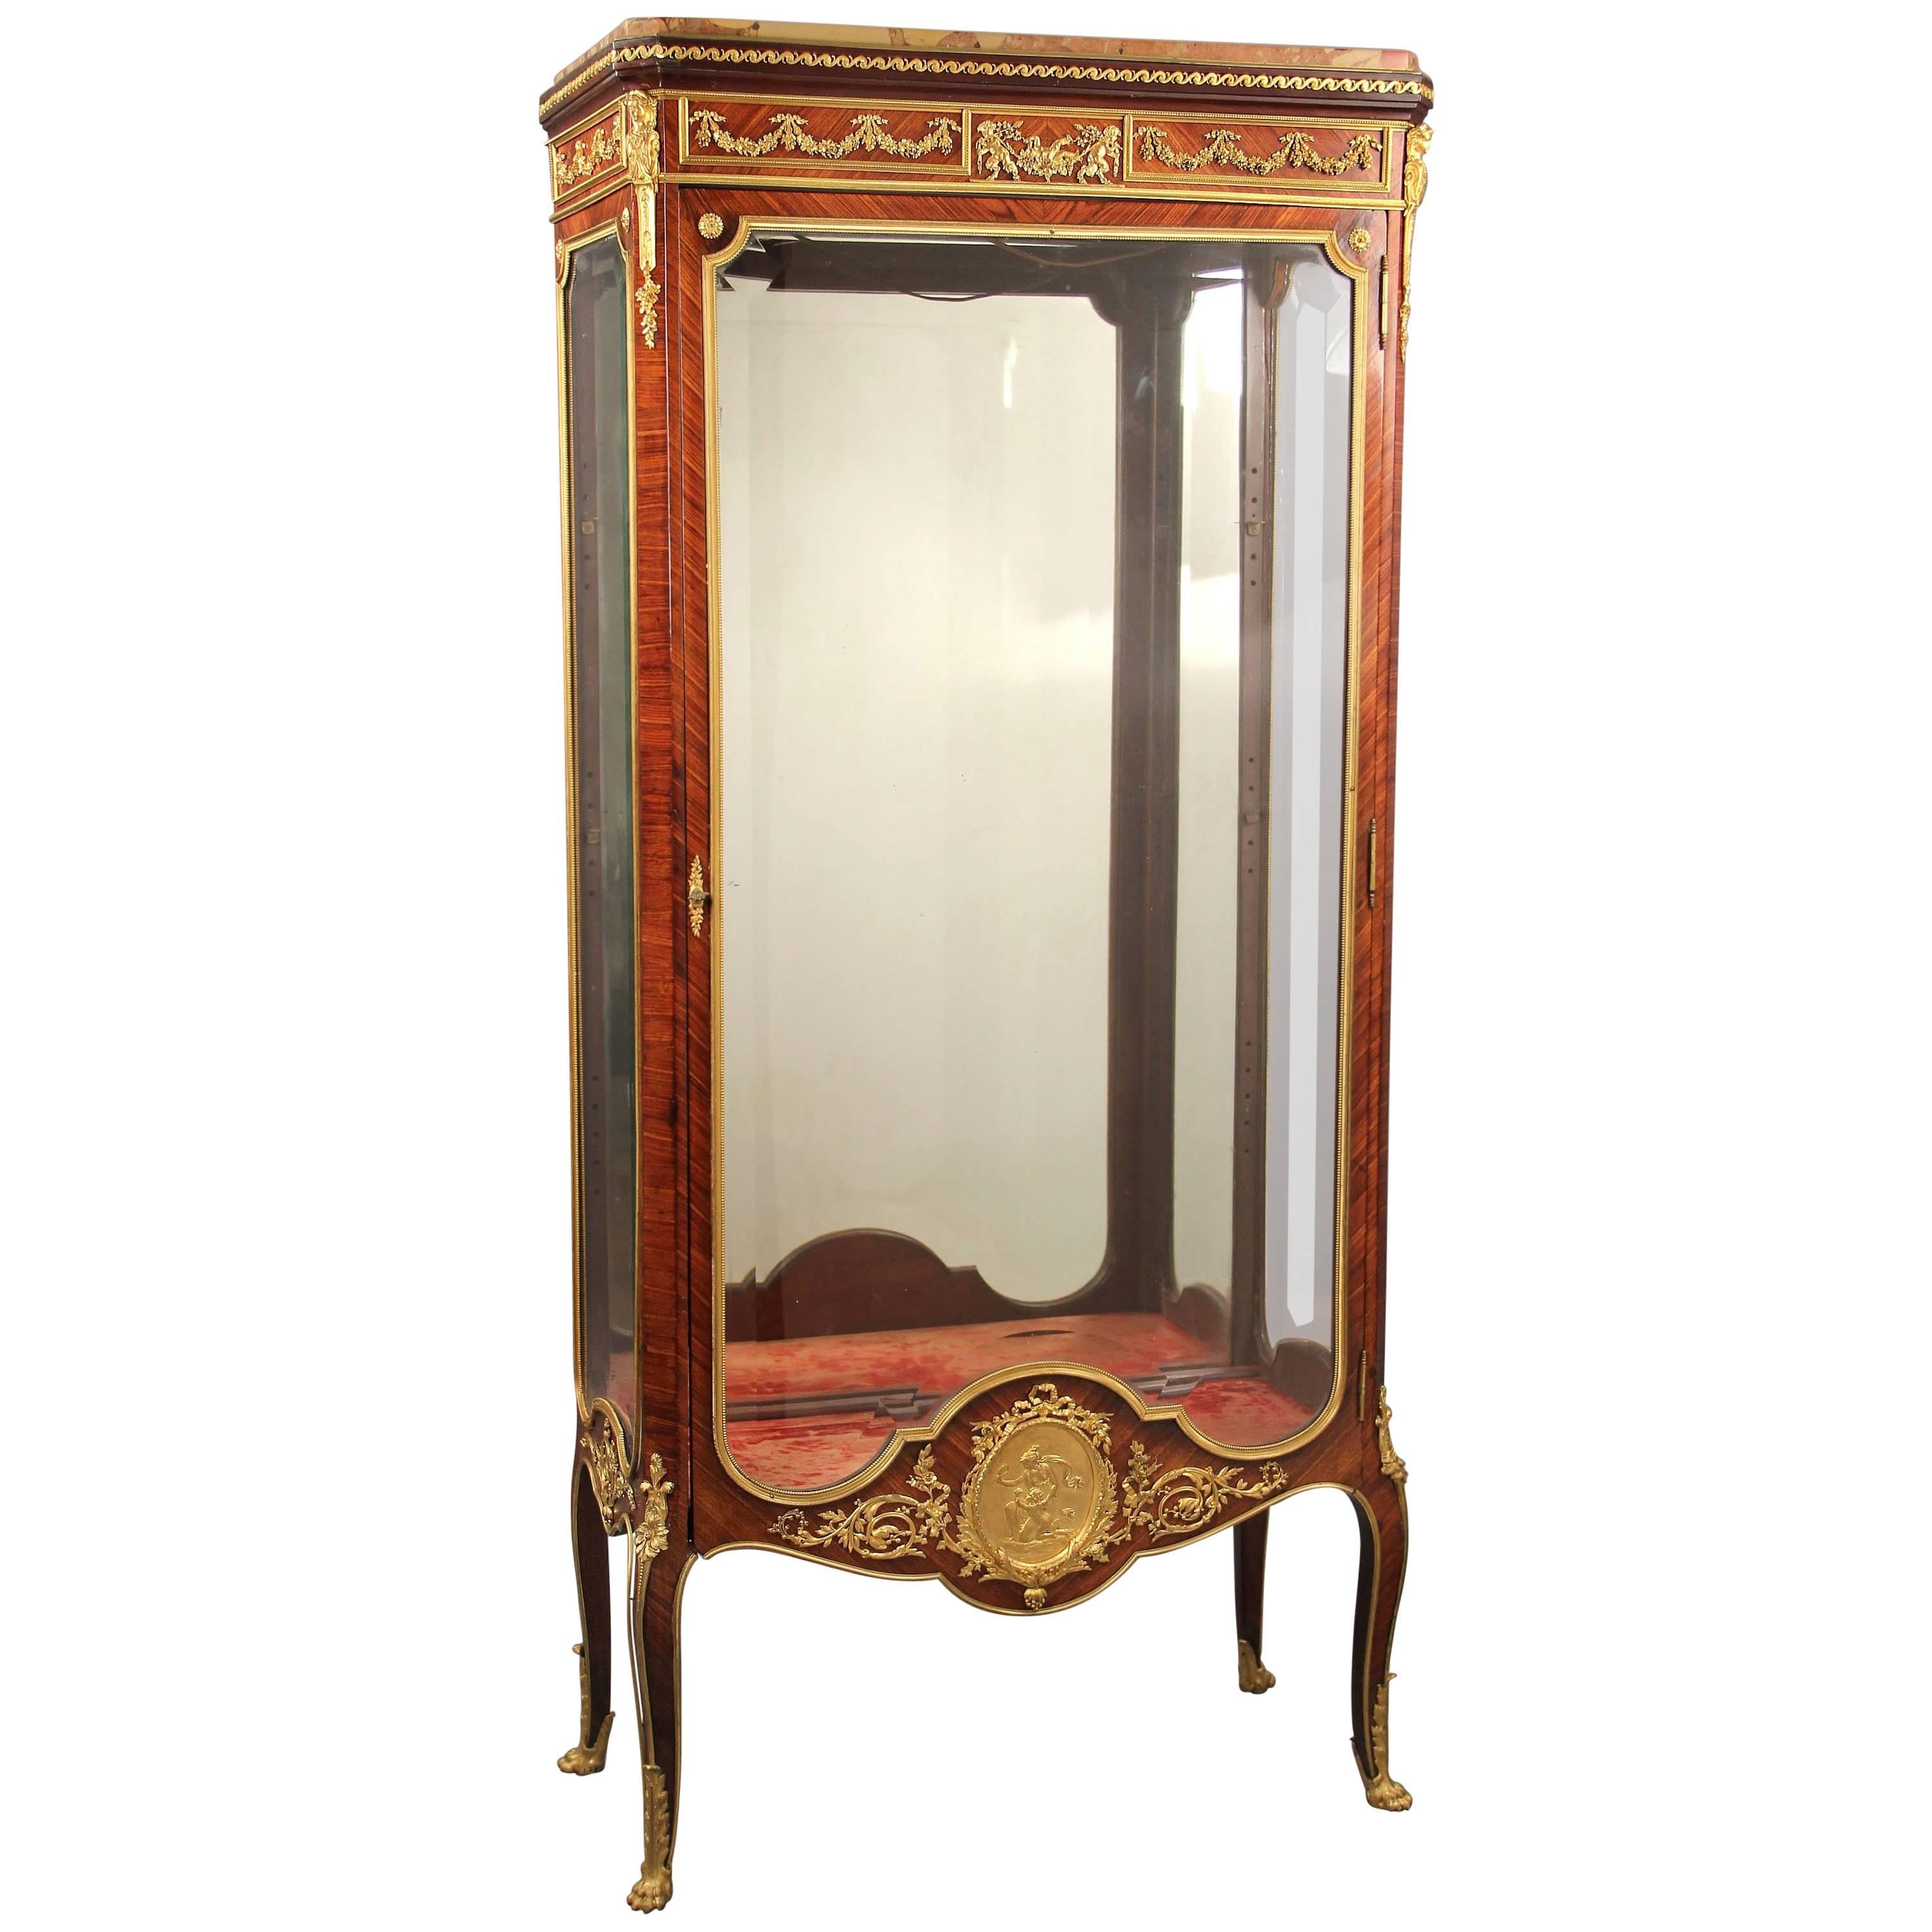 Great Quality Late 19th Century Gilt Bronze Mounted Vitrine by François Linke